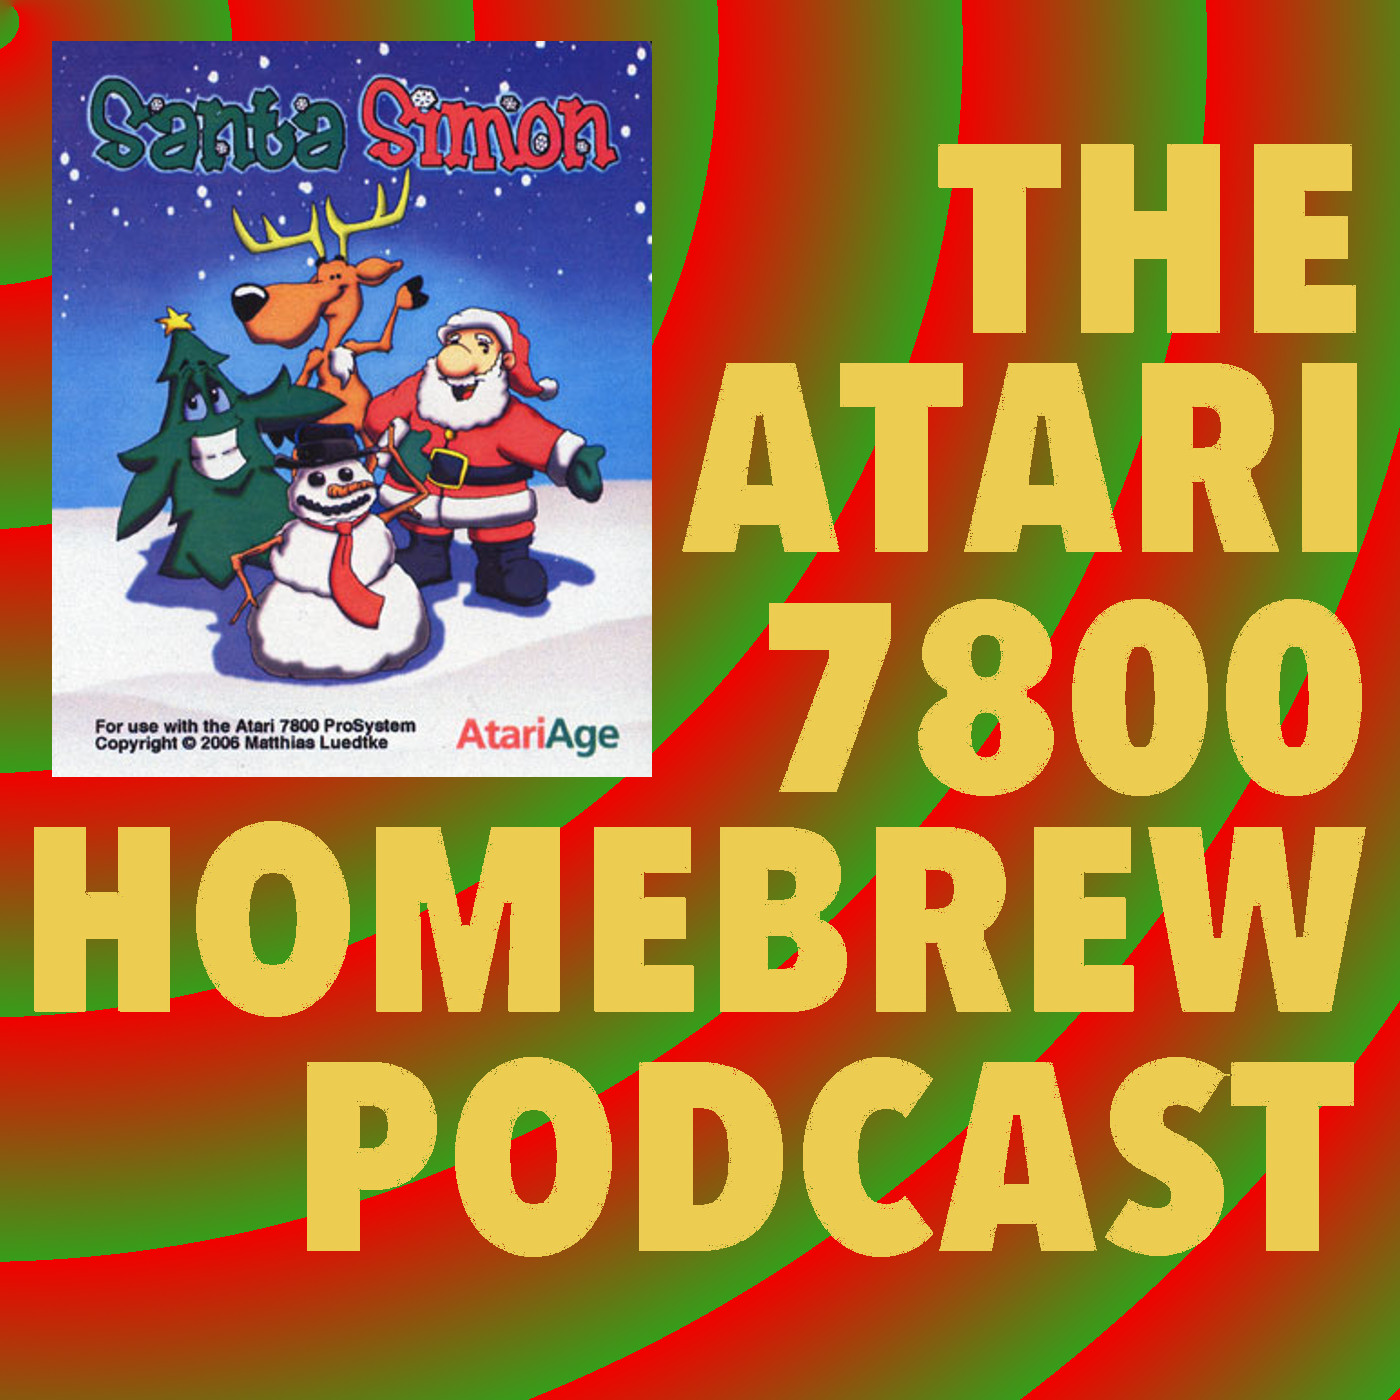 Episode 26: Santa Simon (and other Christmas goodies!)